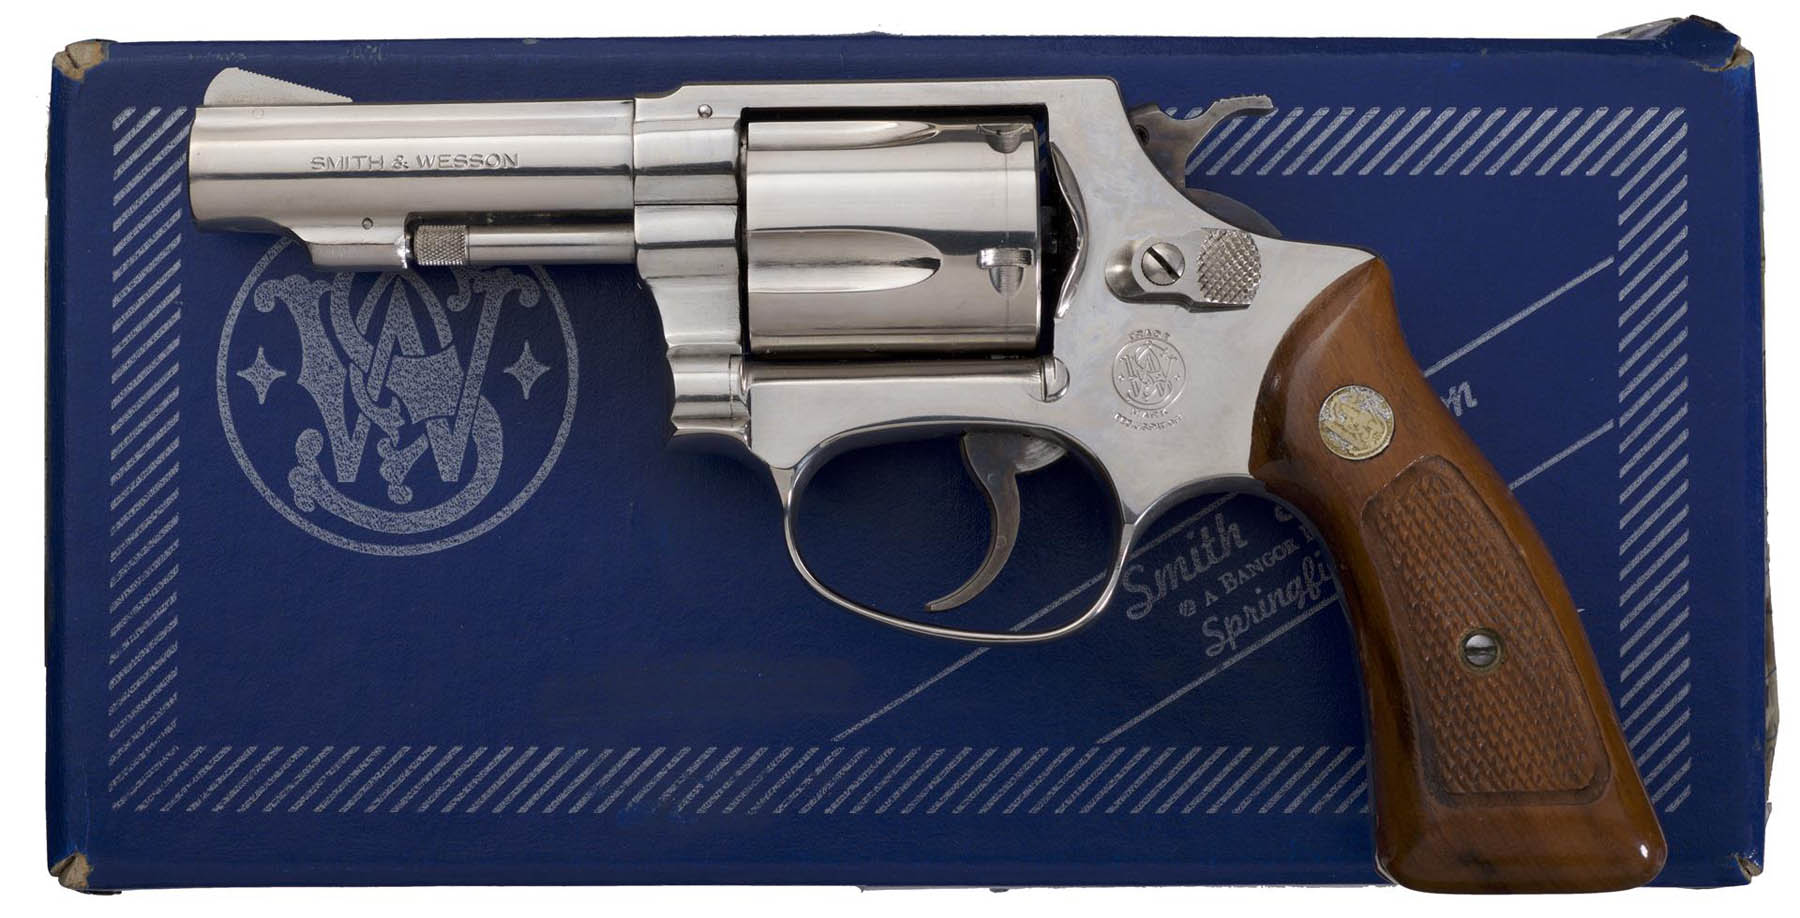 Smith & Wesson 36 Nickle Revolver